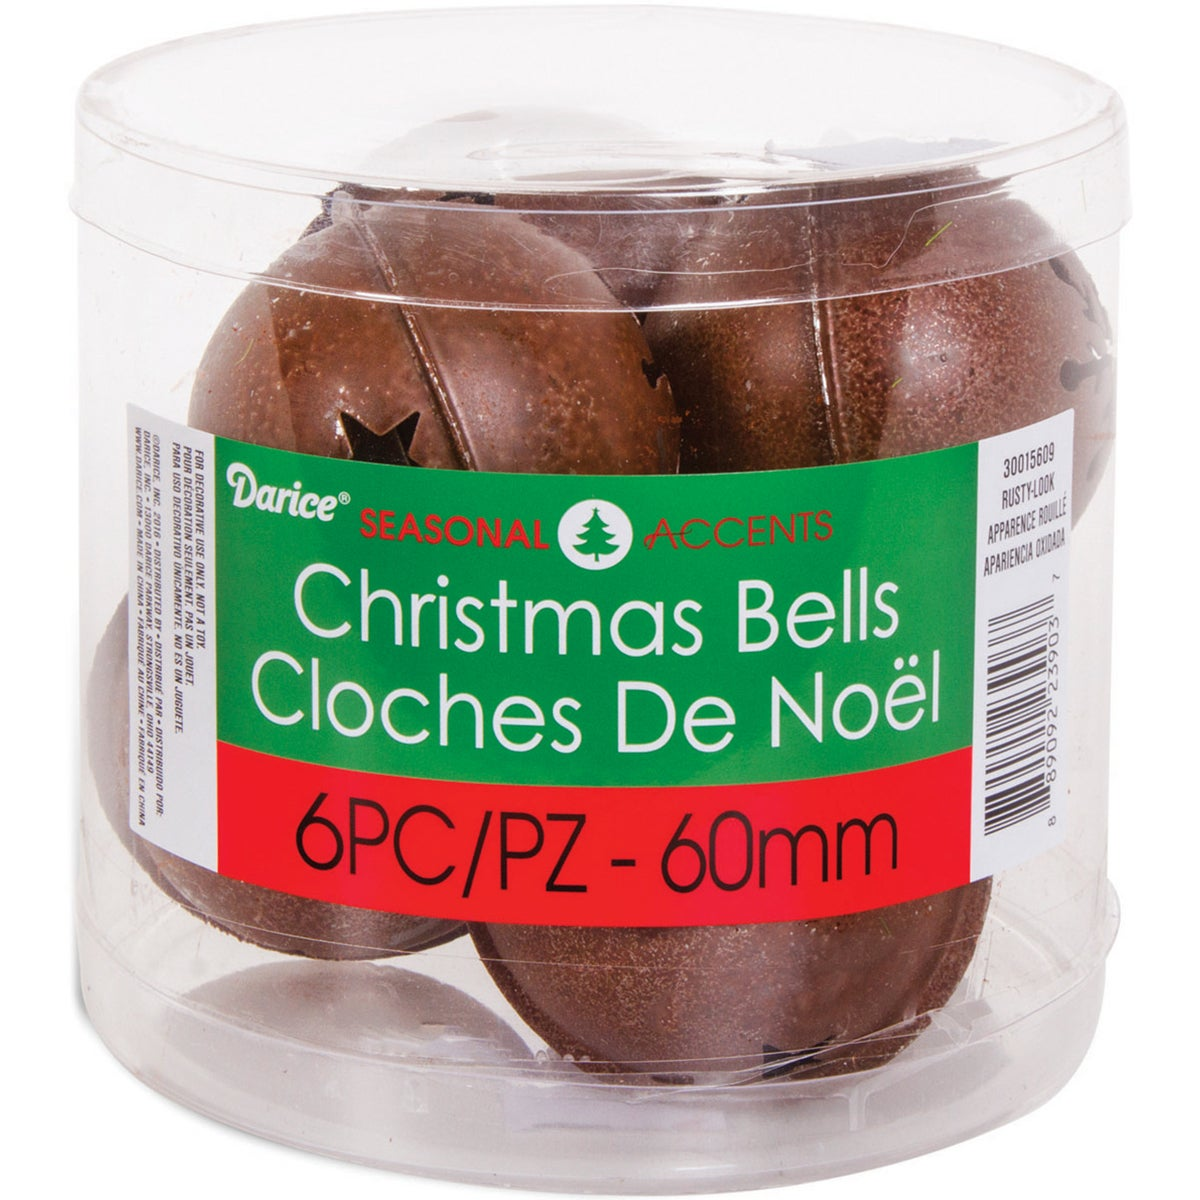 "DARICE Jingle Bells W/Cutouts 2.3"" 6/Pkg (Rusty), Multi (..."